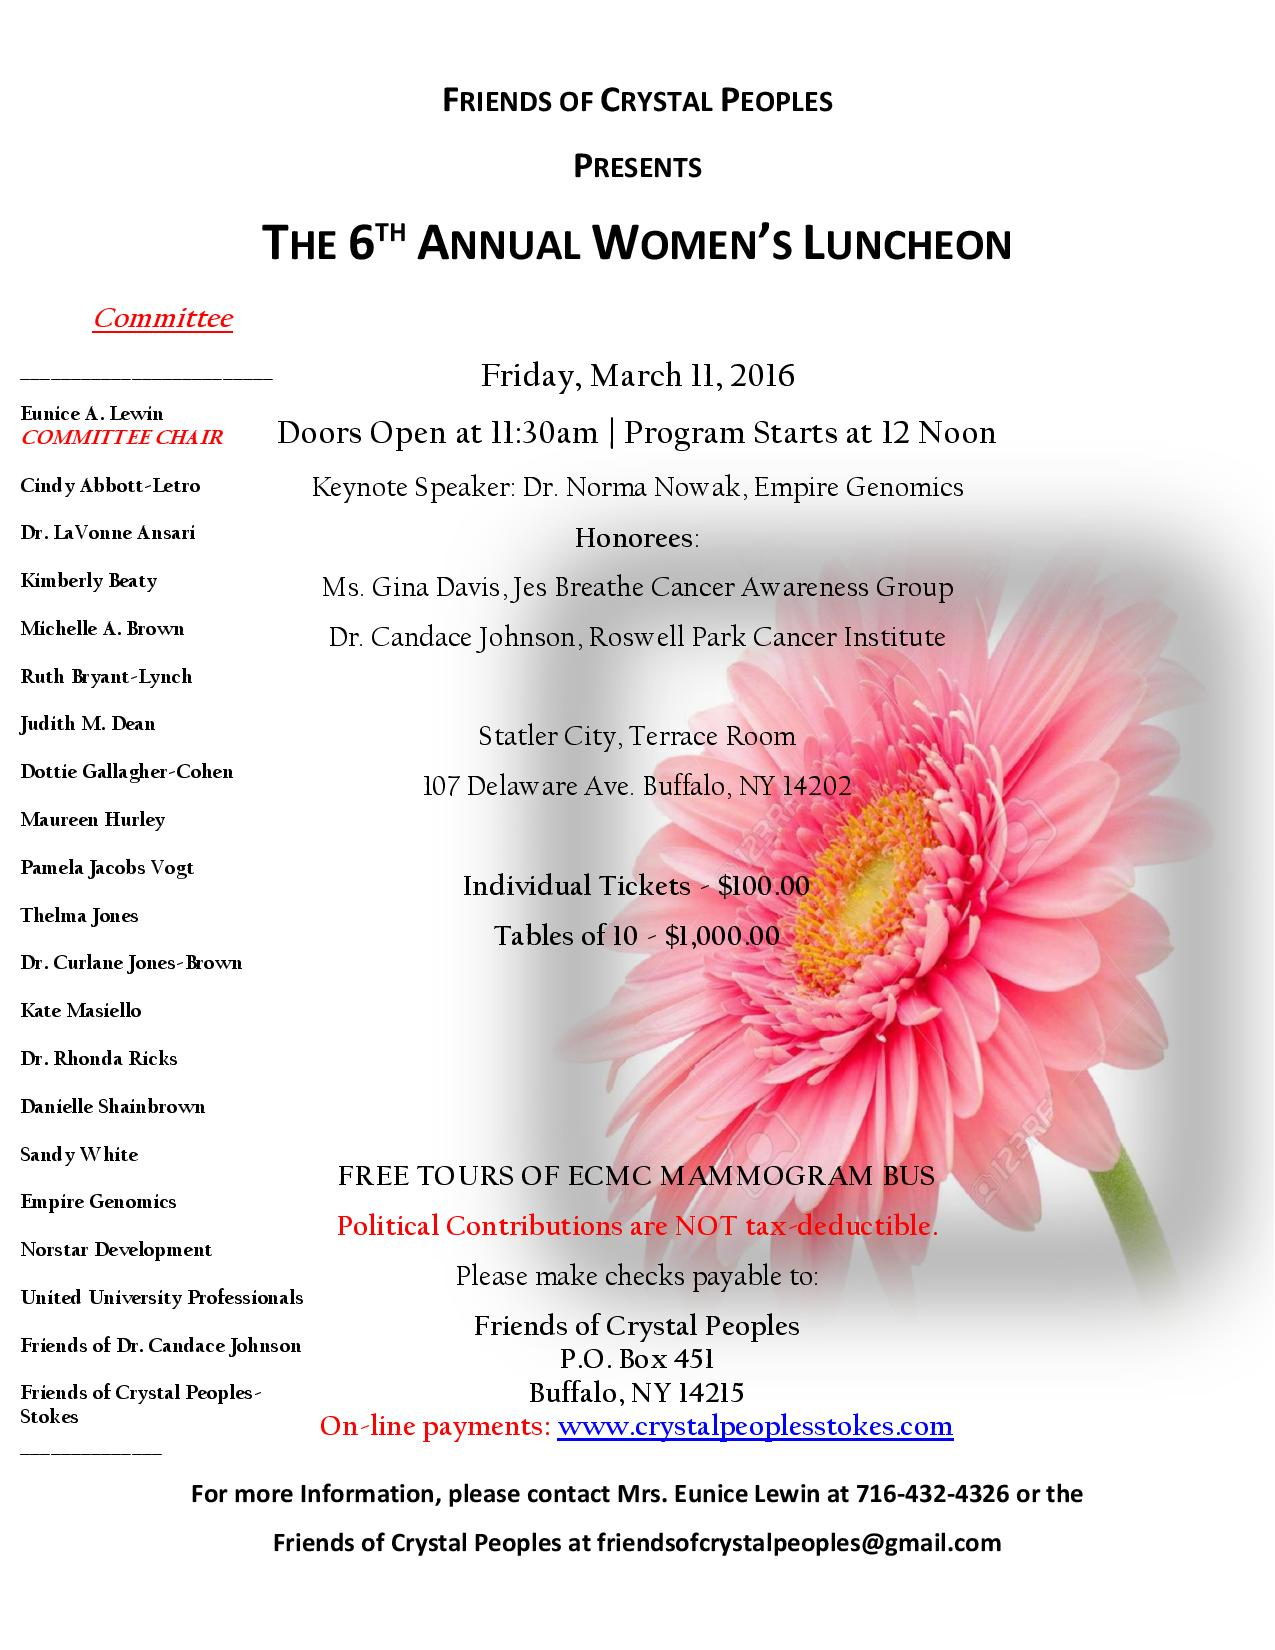 FOCP_Womens_Luncheon_Flyer-page-001.jpg